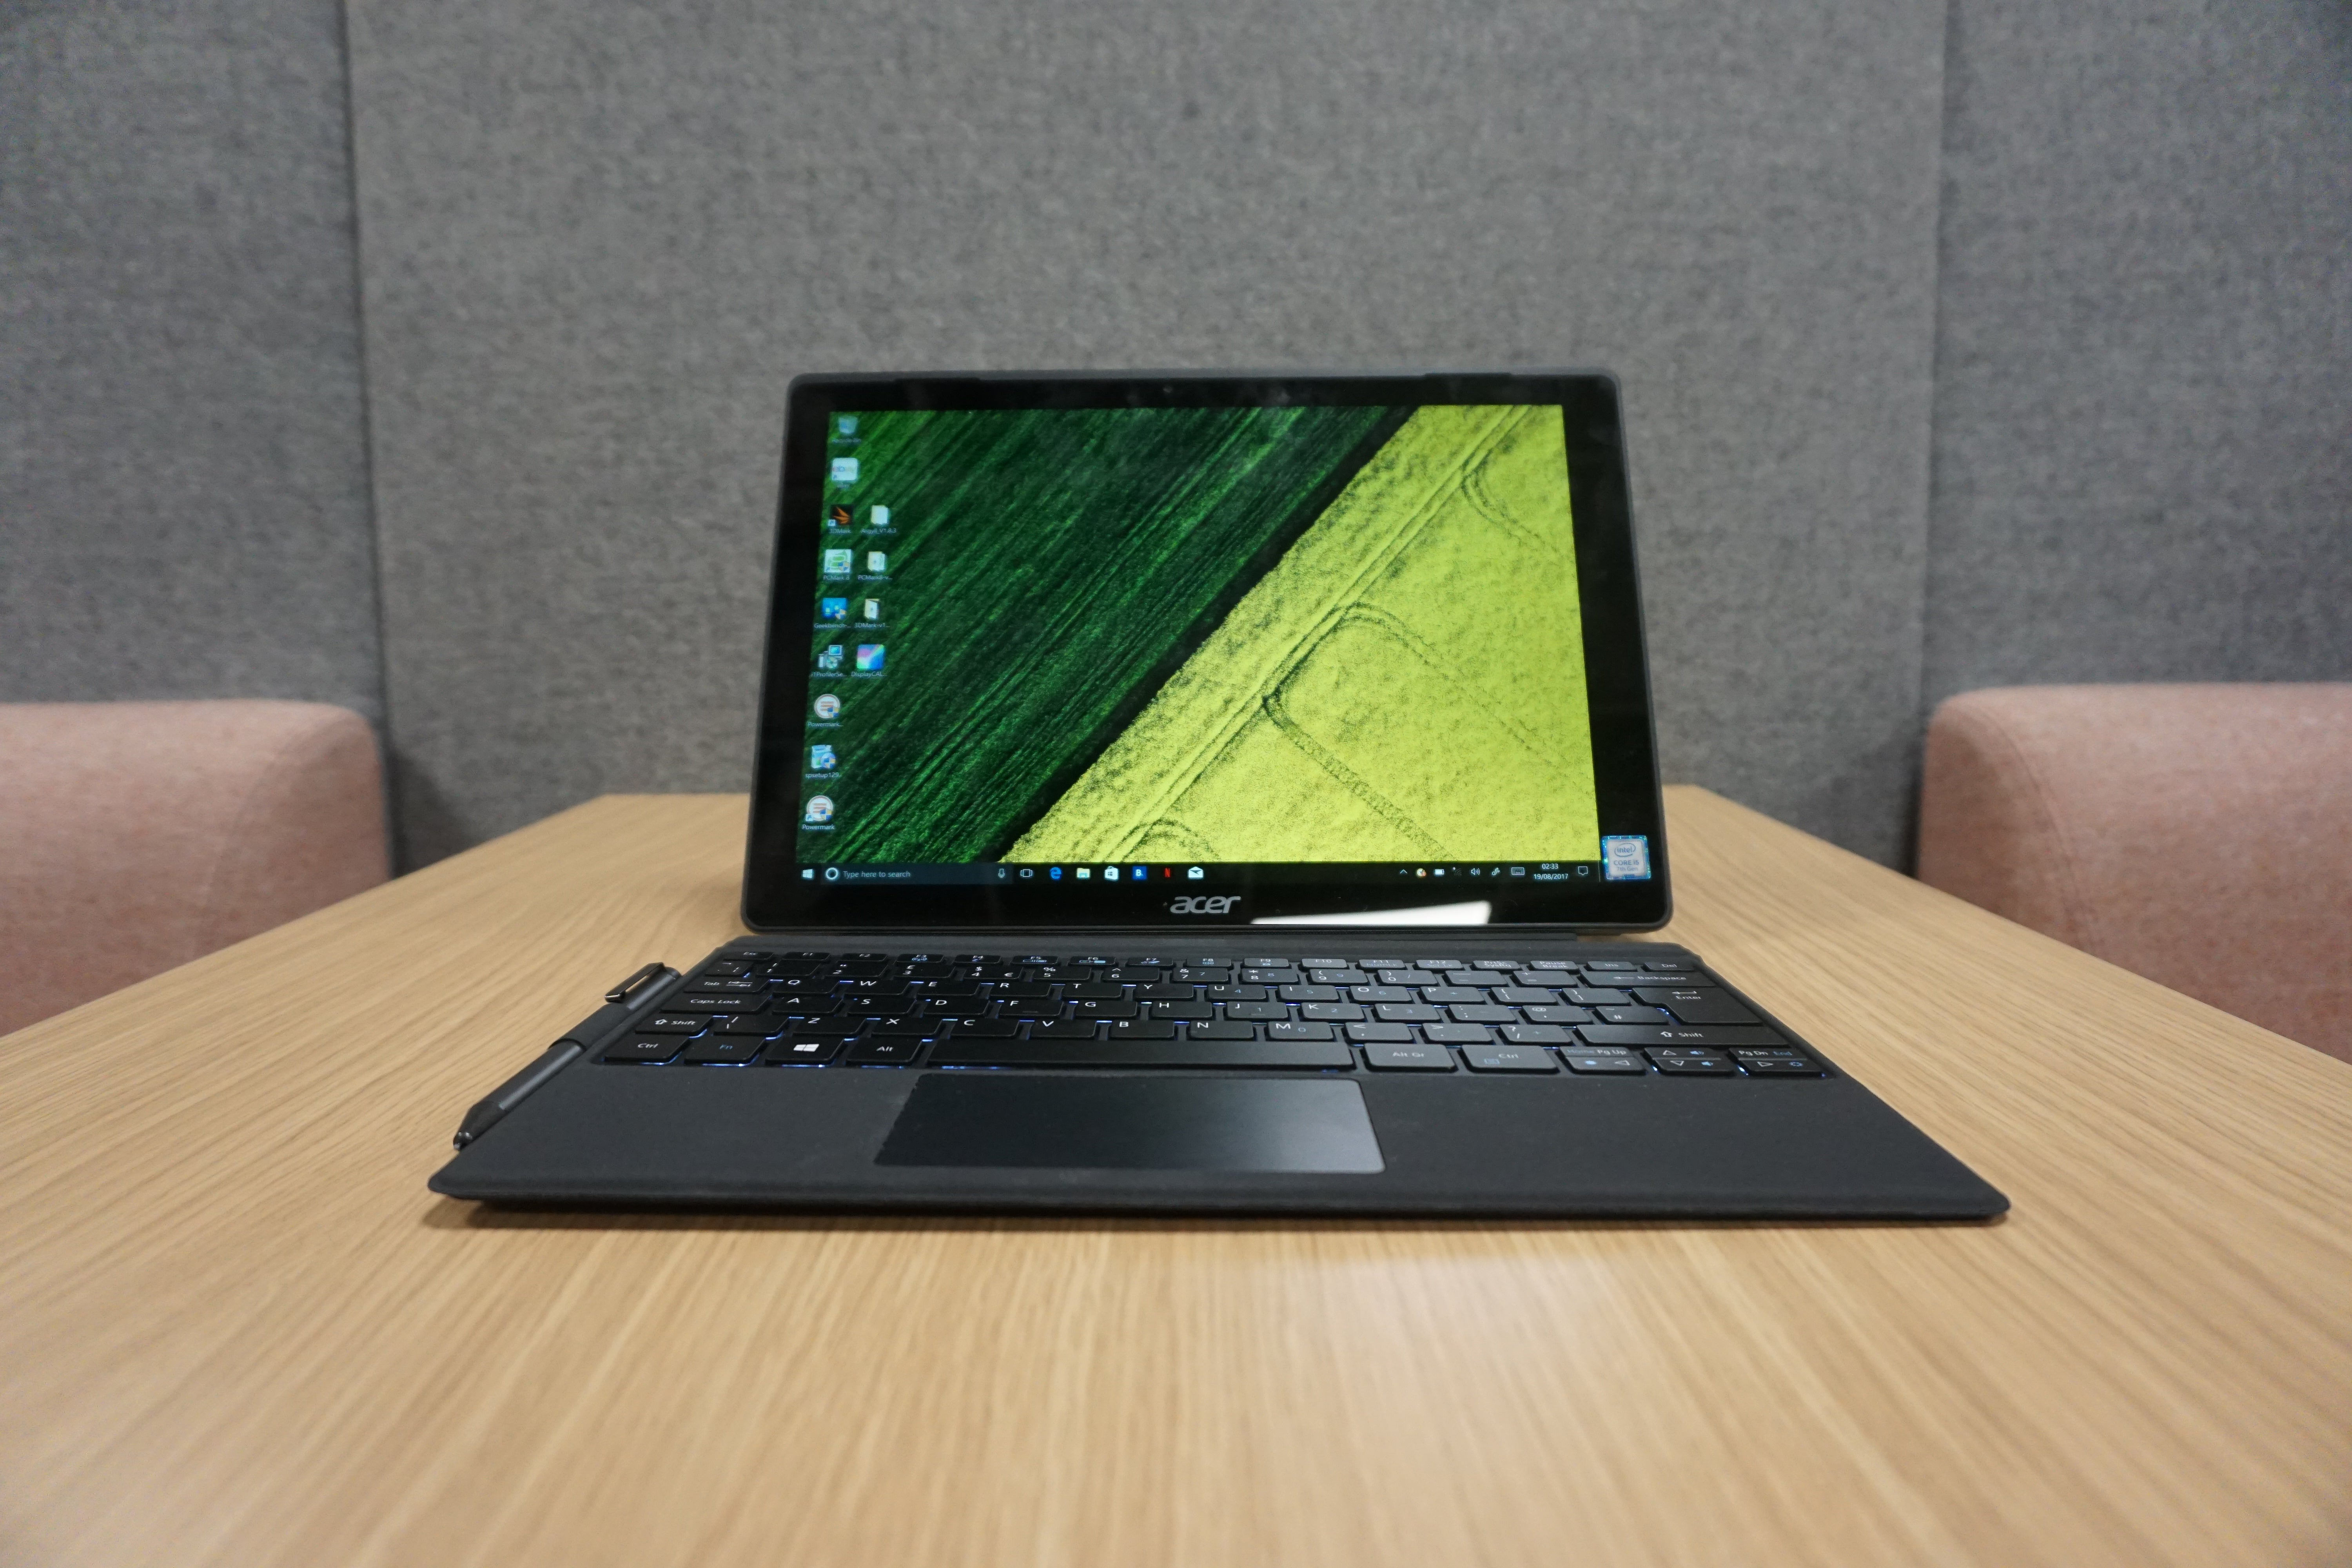 Acer Switch 5 Review Trusted Reviews Labelled Photo Of A Laptop Computer Showing The Monitor